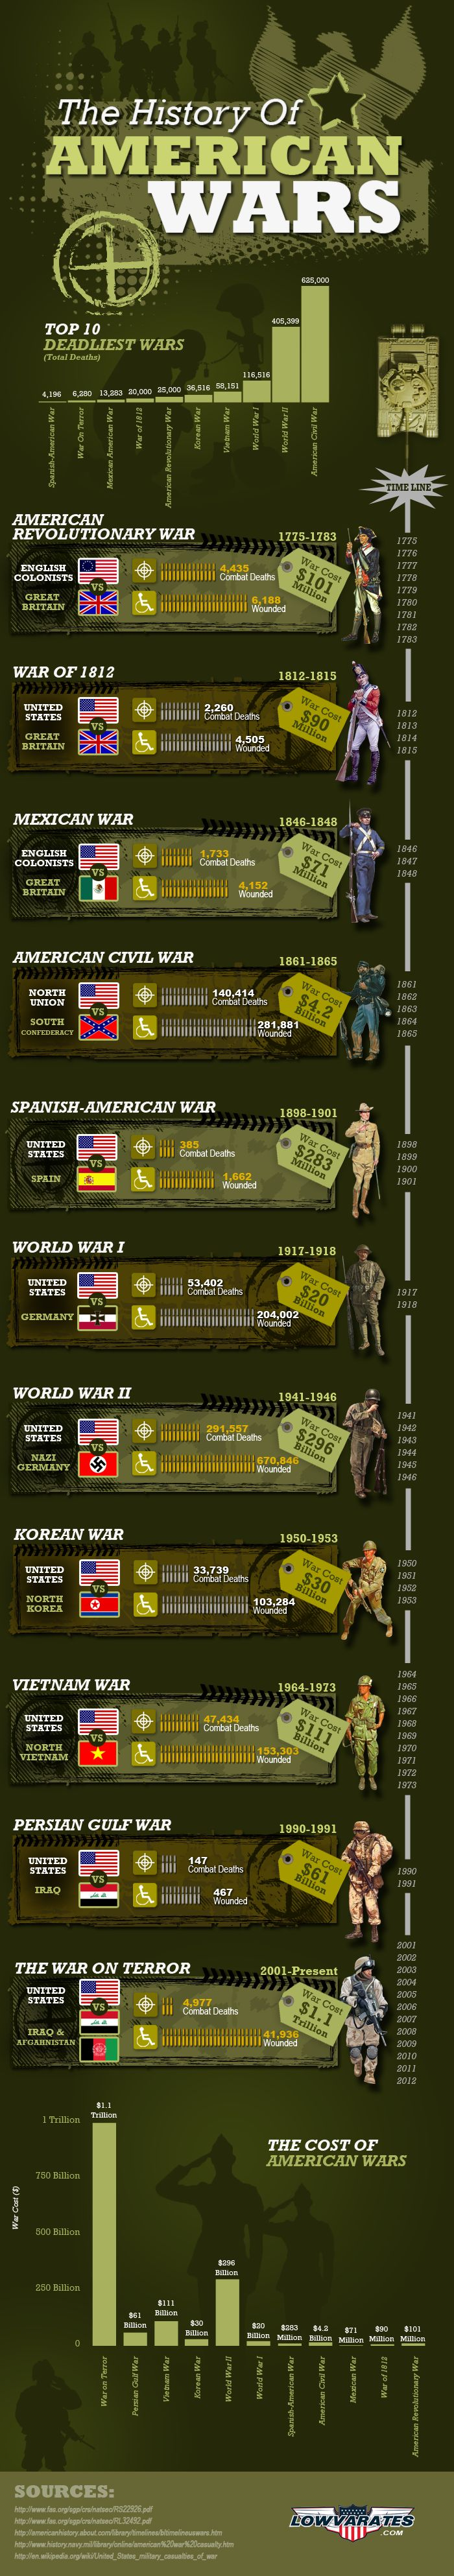 History of American Wars. thank you veterans!